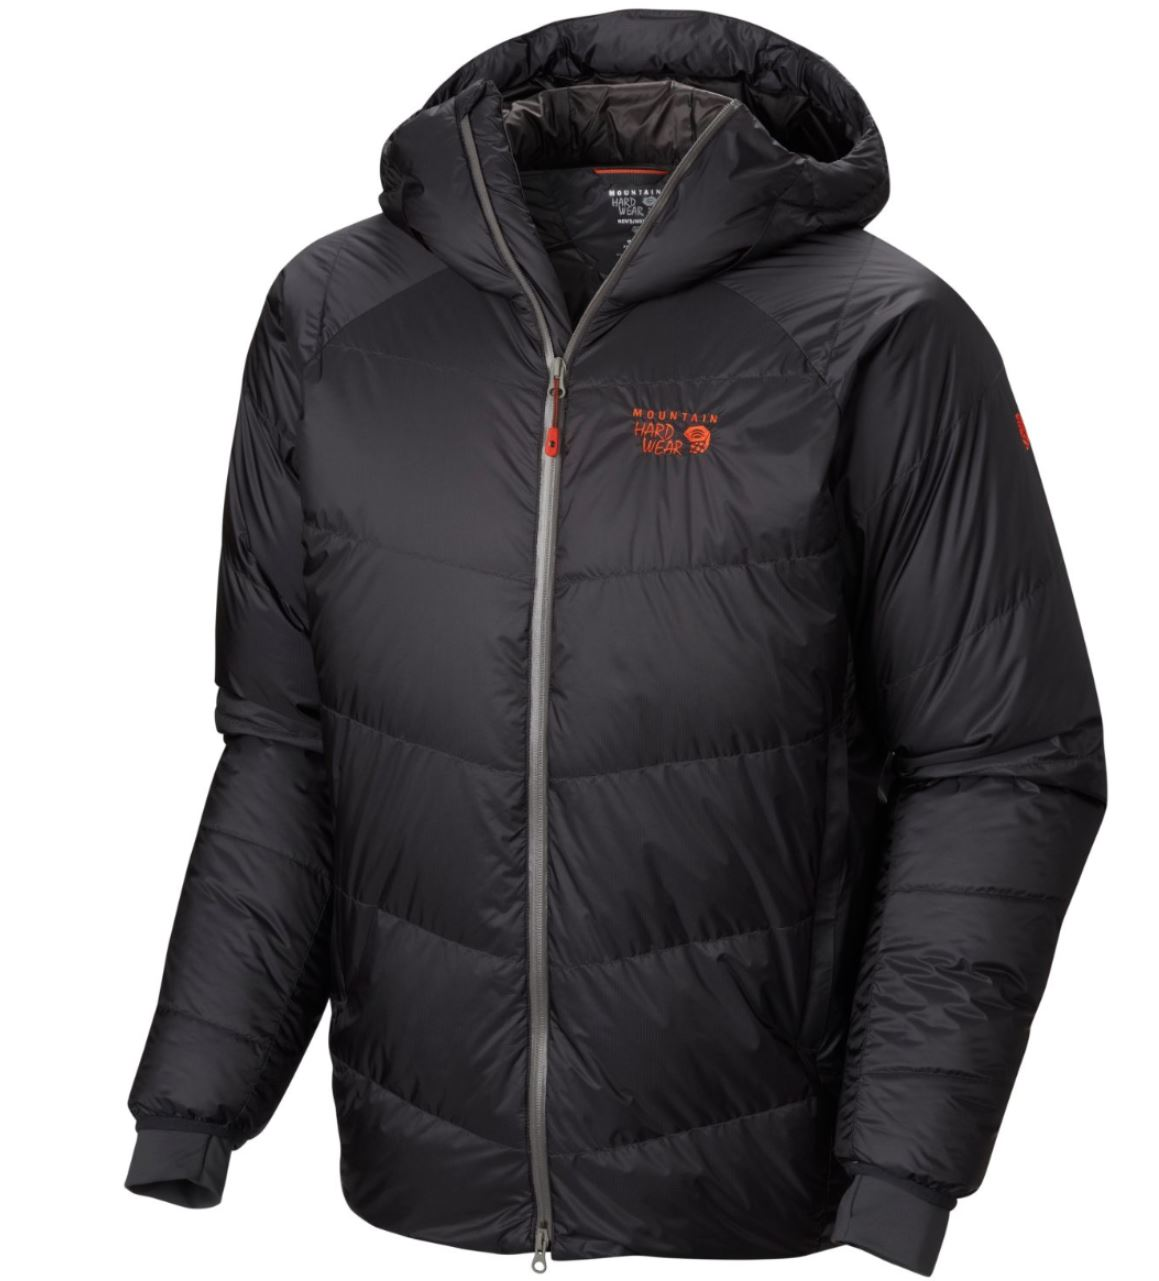 Mountain Hardwear brings elevated performance to men's & women's clothing, jackets, Everyday Casual Wear · Climbing Apparel & Gear · New Arrivals · Free ShippingTypes: Jackets, Tops, Bottoms, Accessories, Packs, Luggage, Tents, Sleeping Bags.